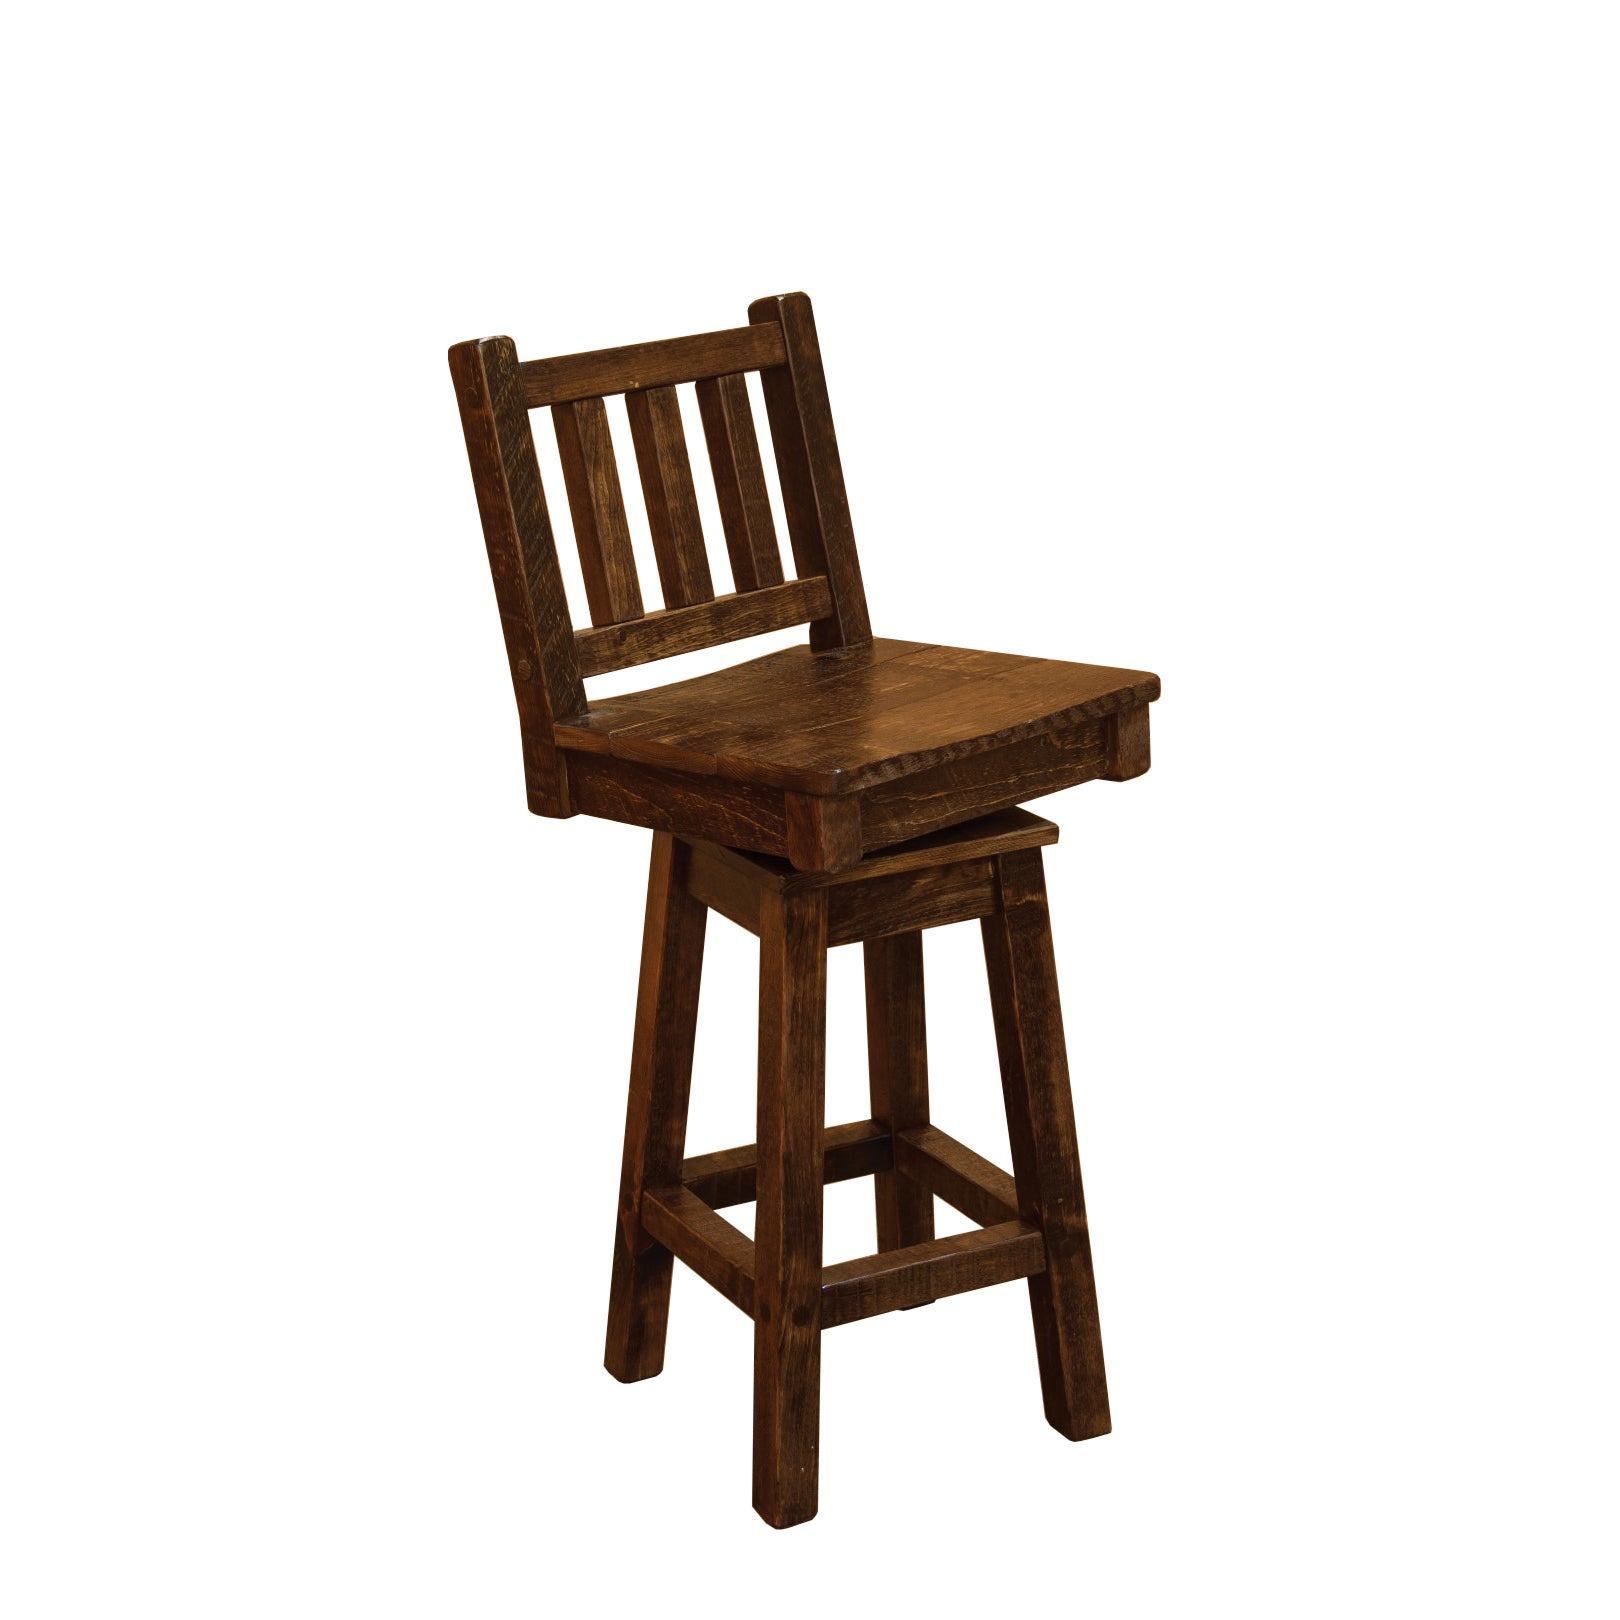 Barn Wood Style Timber Peg Swivel Bar Stool With Back 24 Or 36 Inch Free Shipping Today 14158670